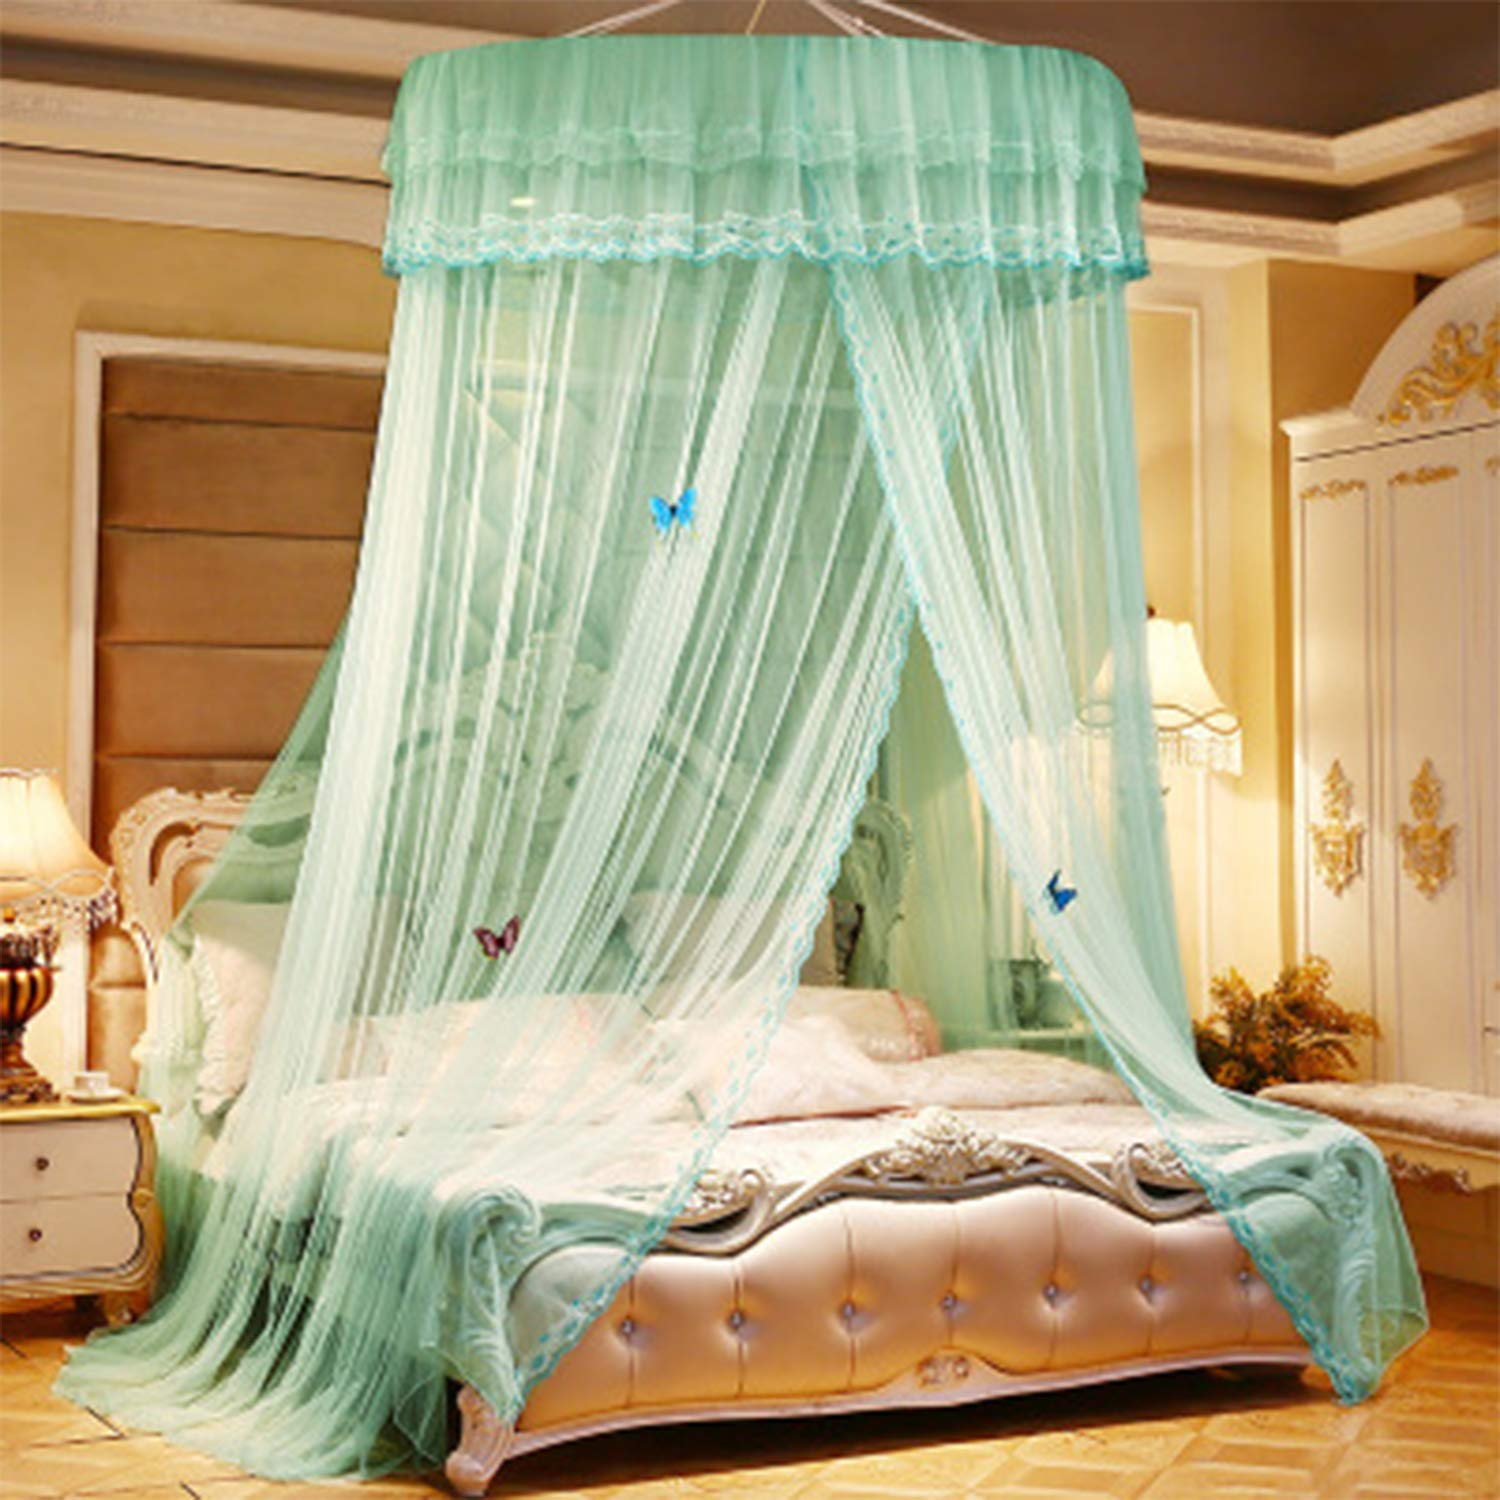 HEIFEN Mosquito Net Heightening Dome Design 360° All-Round Anti-Mosquito Thickening Encryption Mesh Quick Installation Round Ceiling, Easy to Use and Simple. Green